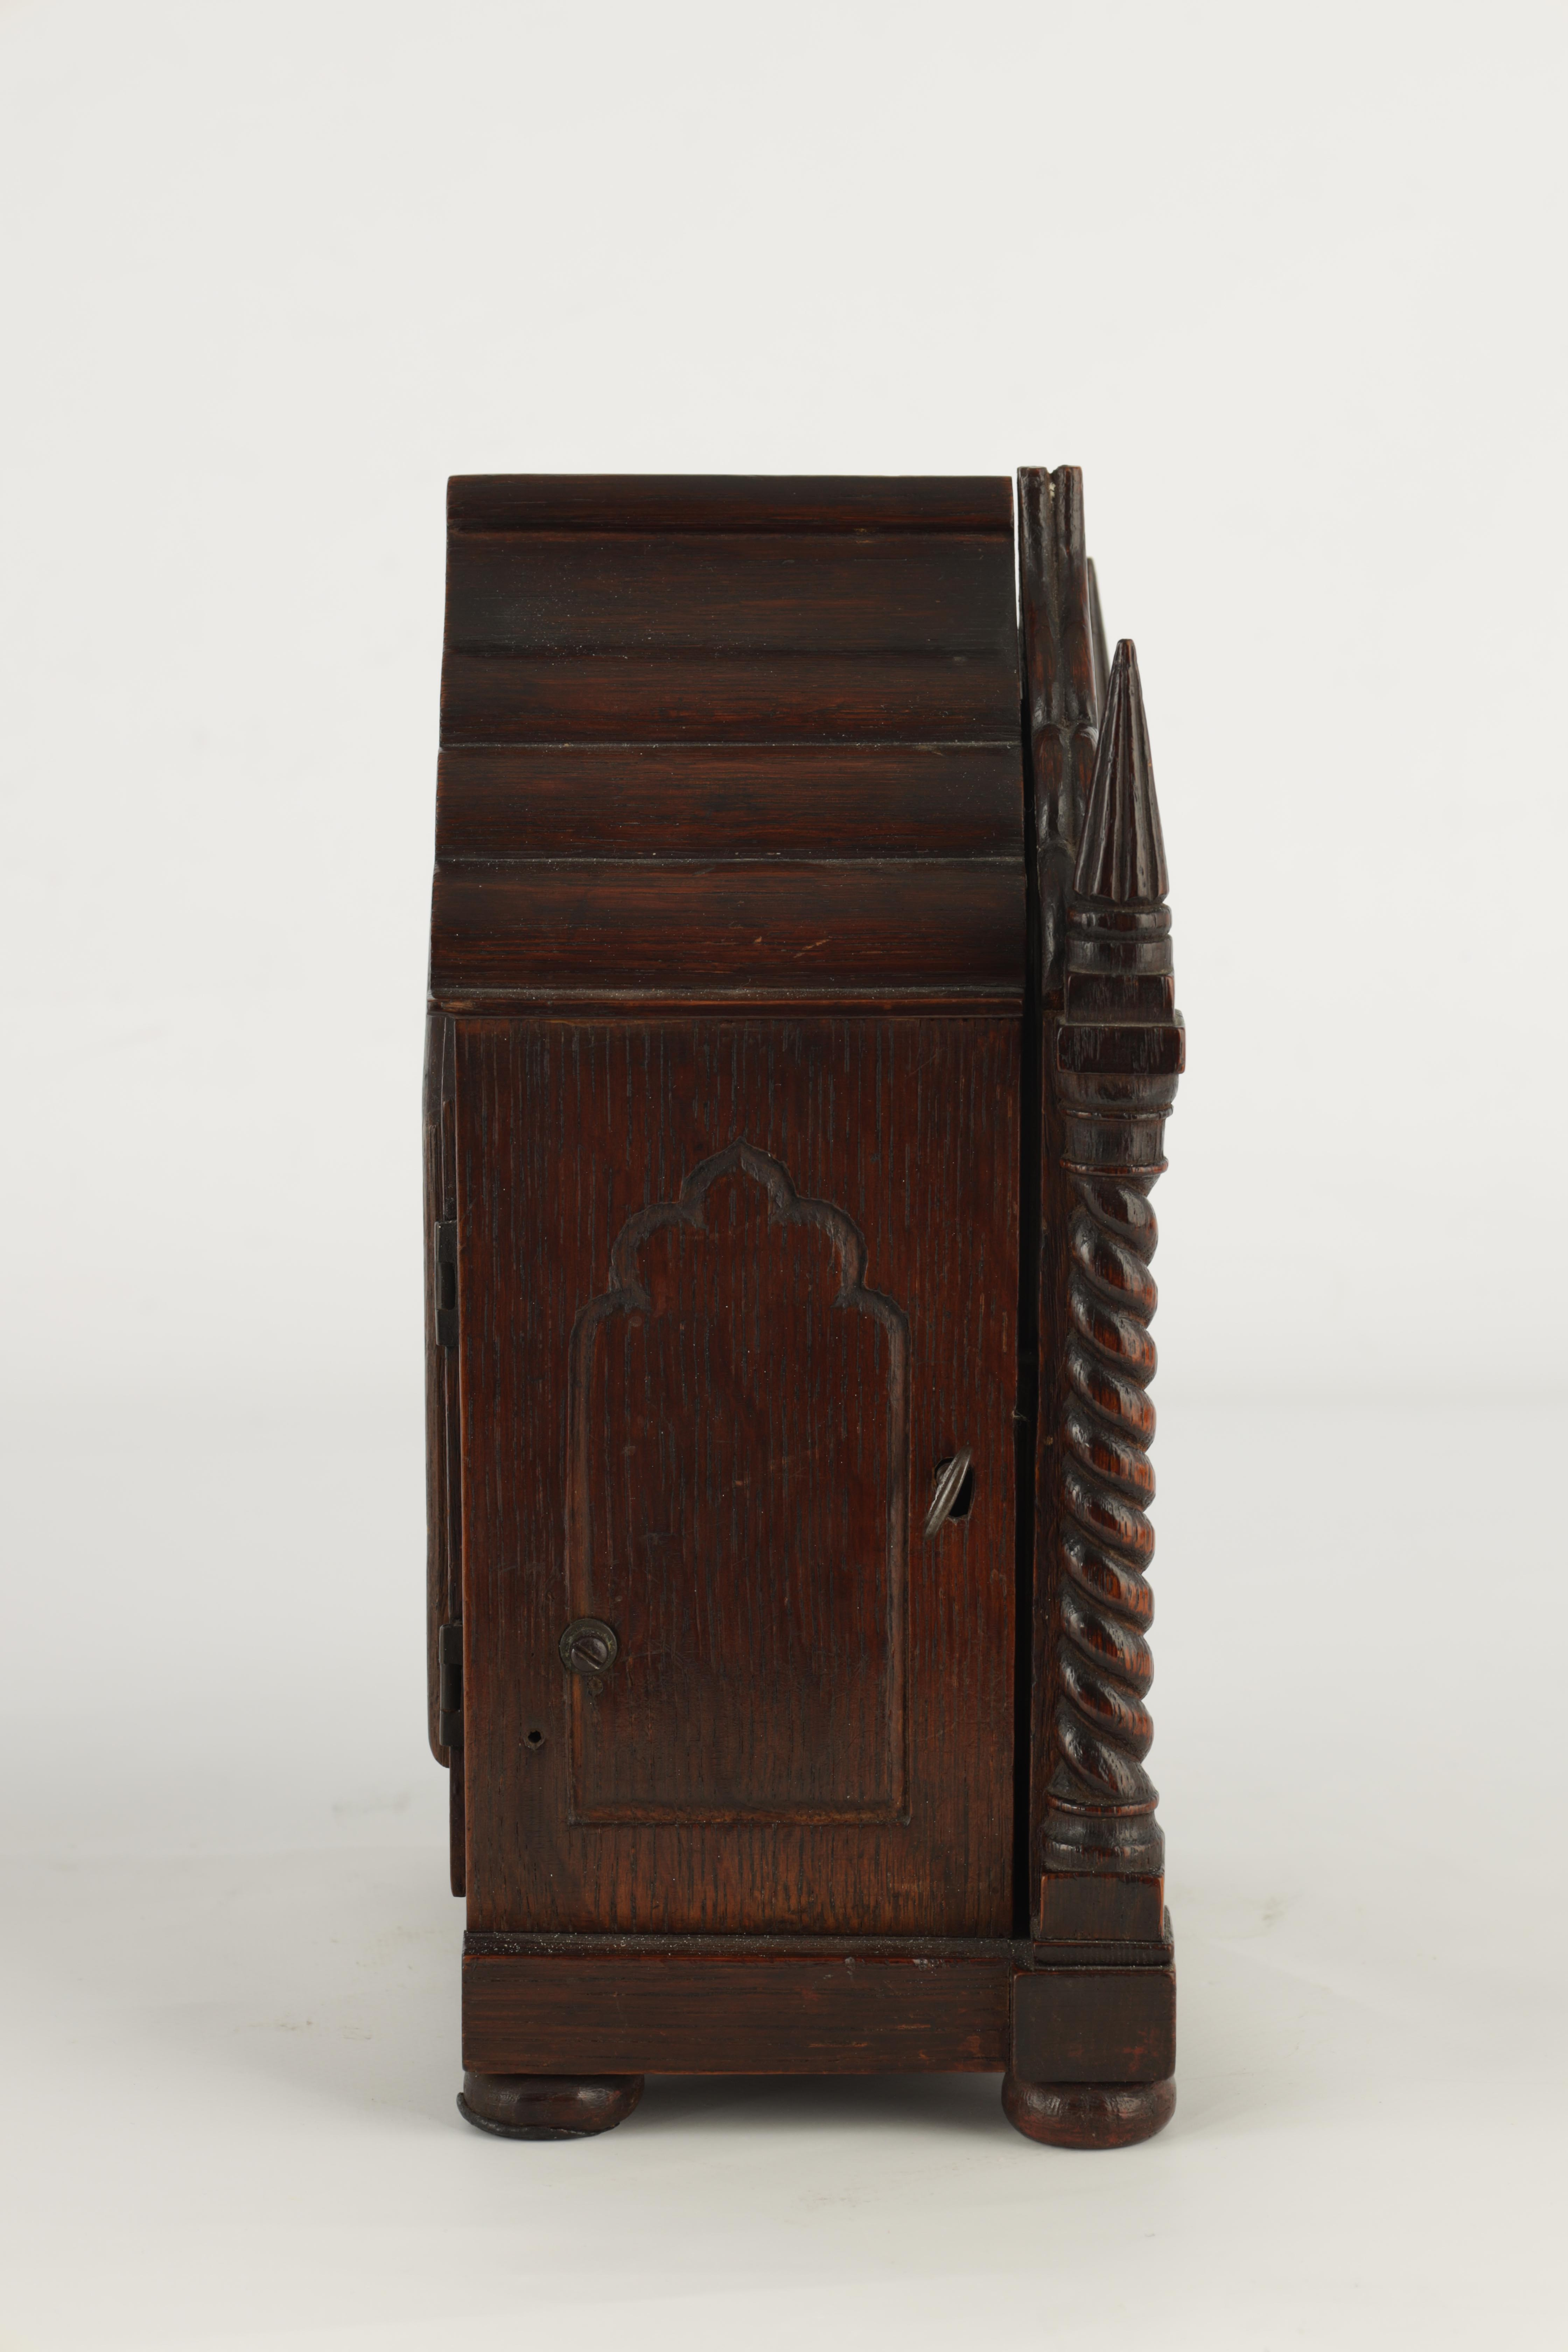 A SMALL MID 19TH CENTURY OAK CASED DOUBLE FUSEE MANTEL CLOCK the gothic style case with twisted - Image 3 of 7